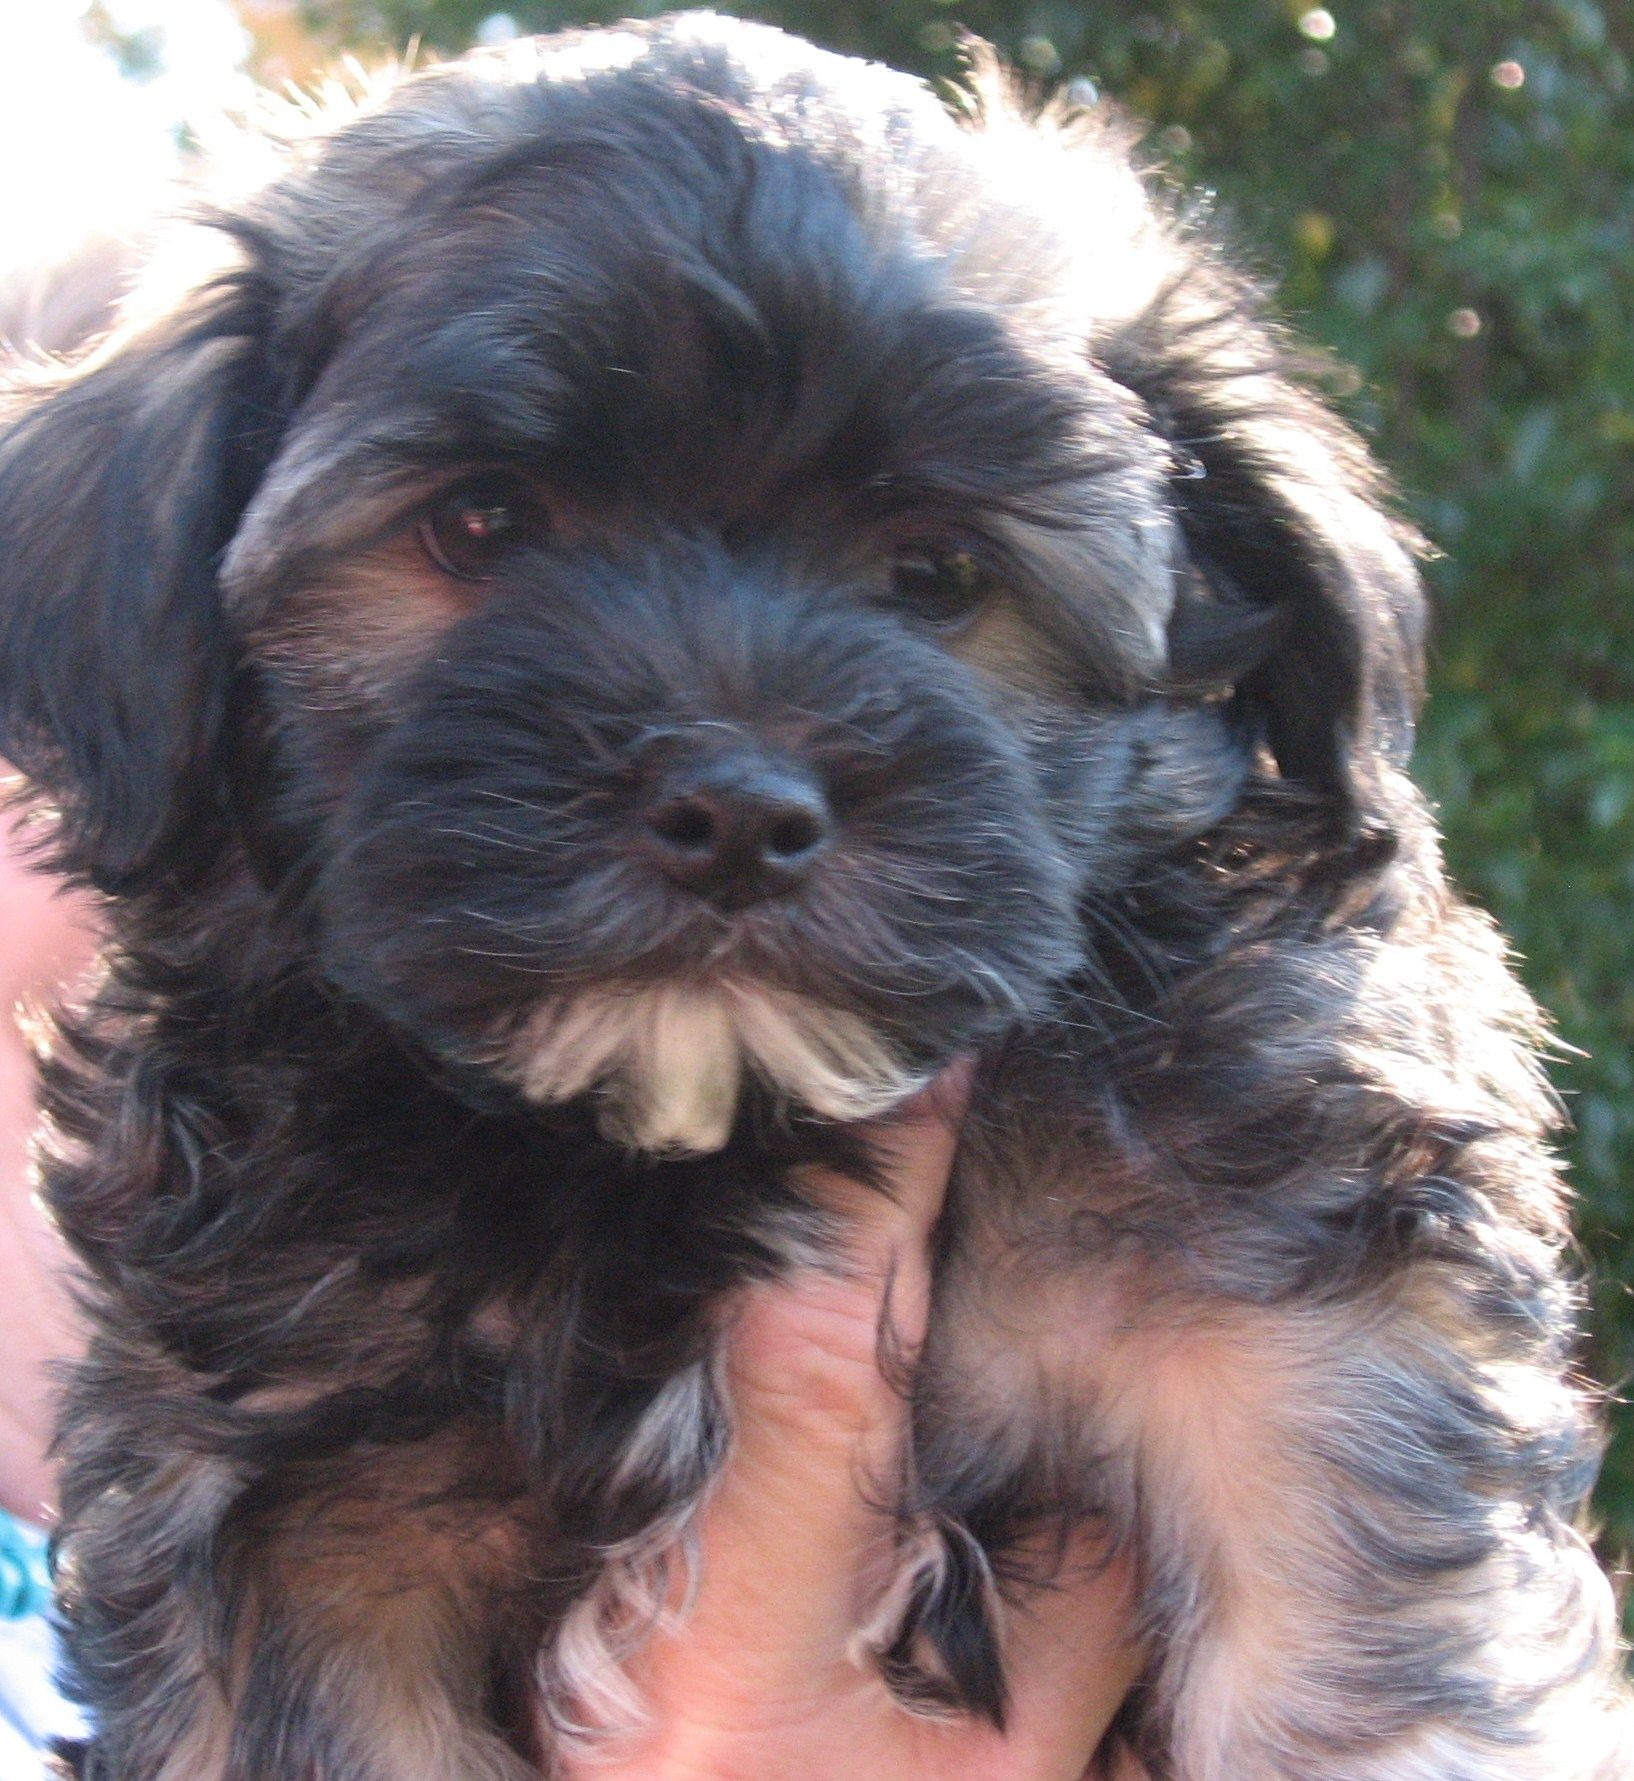 I have a Havanese grand puppy... (Megan's) named walter